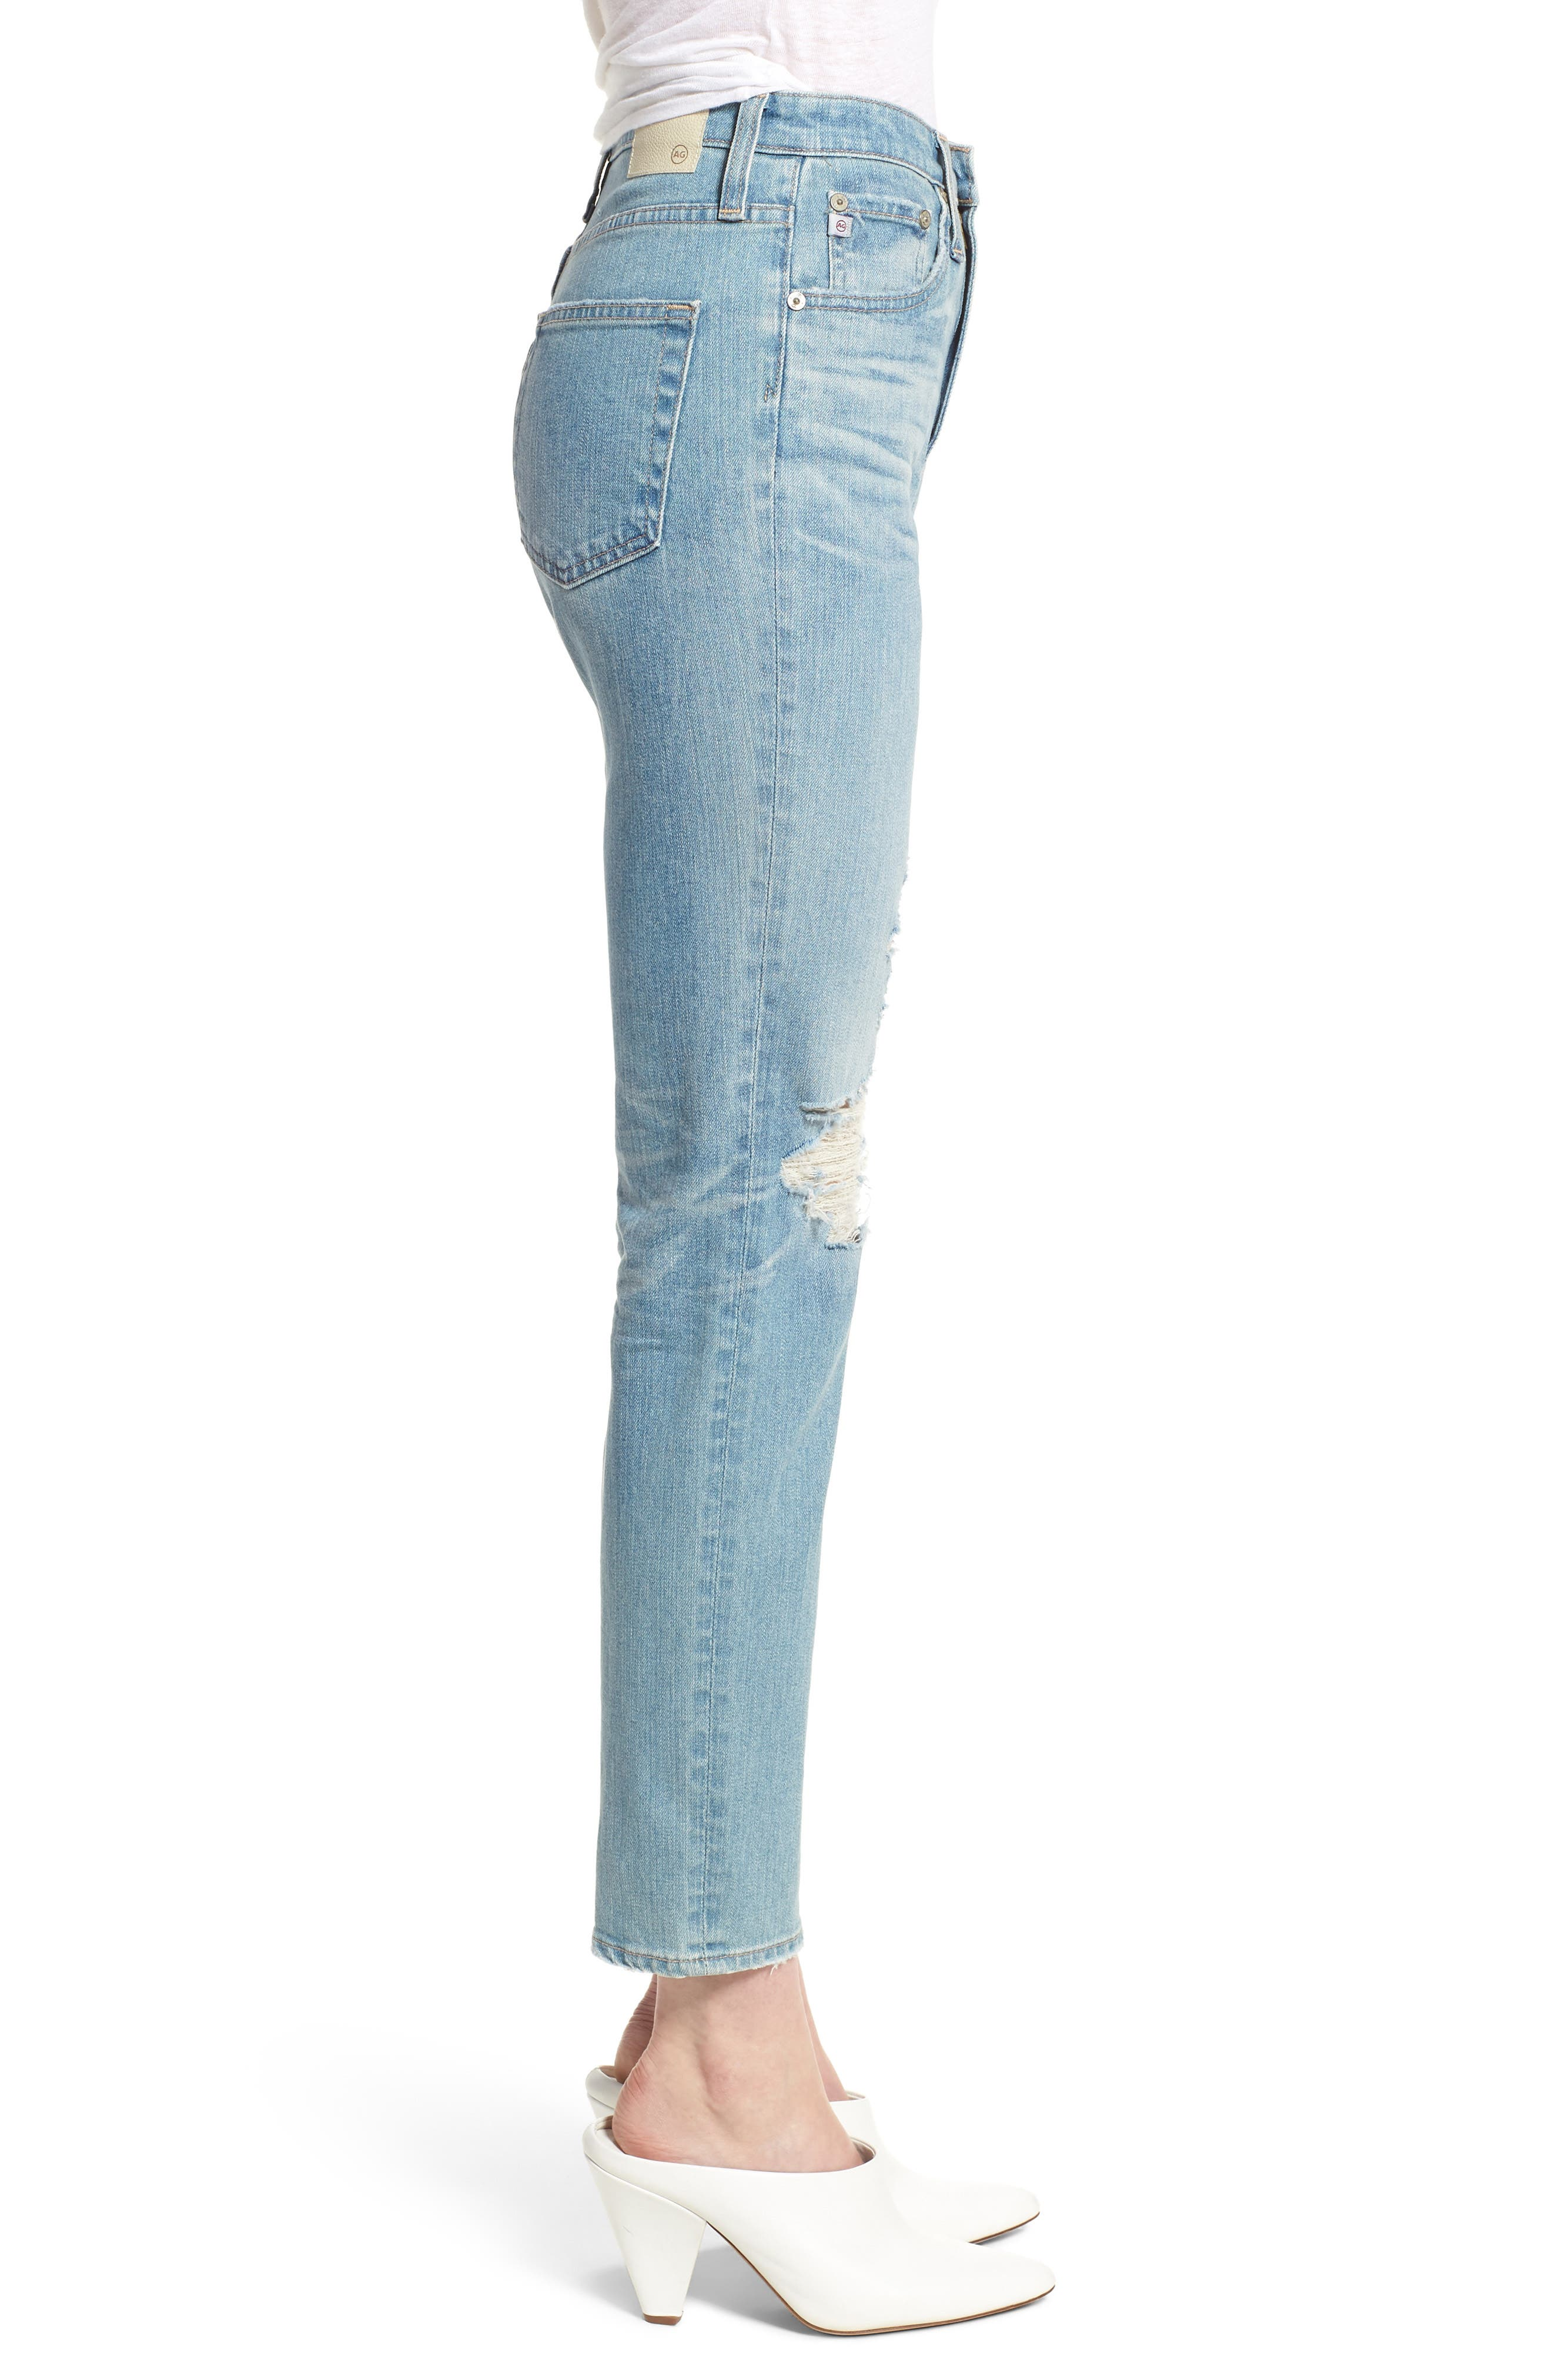 'The Phoebe' Vintage High Rise Straight Leg Jeans,                             Alternate thumbnail 3, color,                             18 Years Headlands